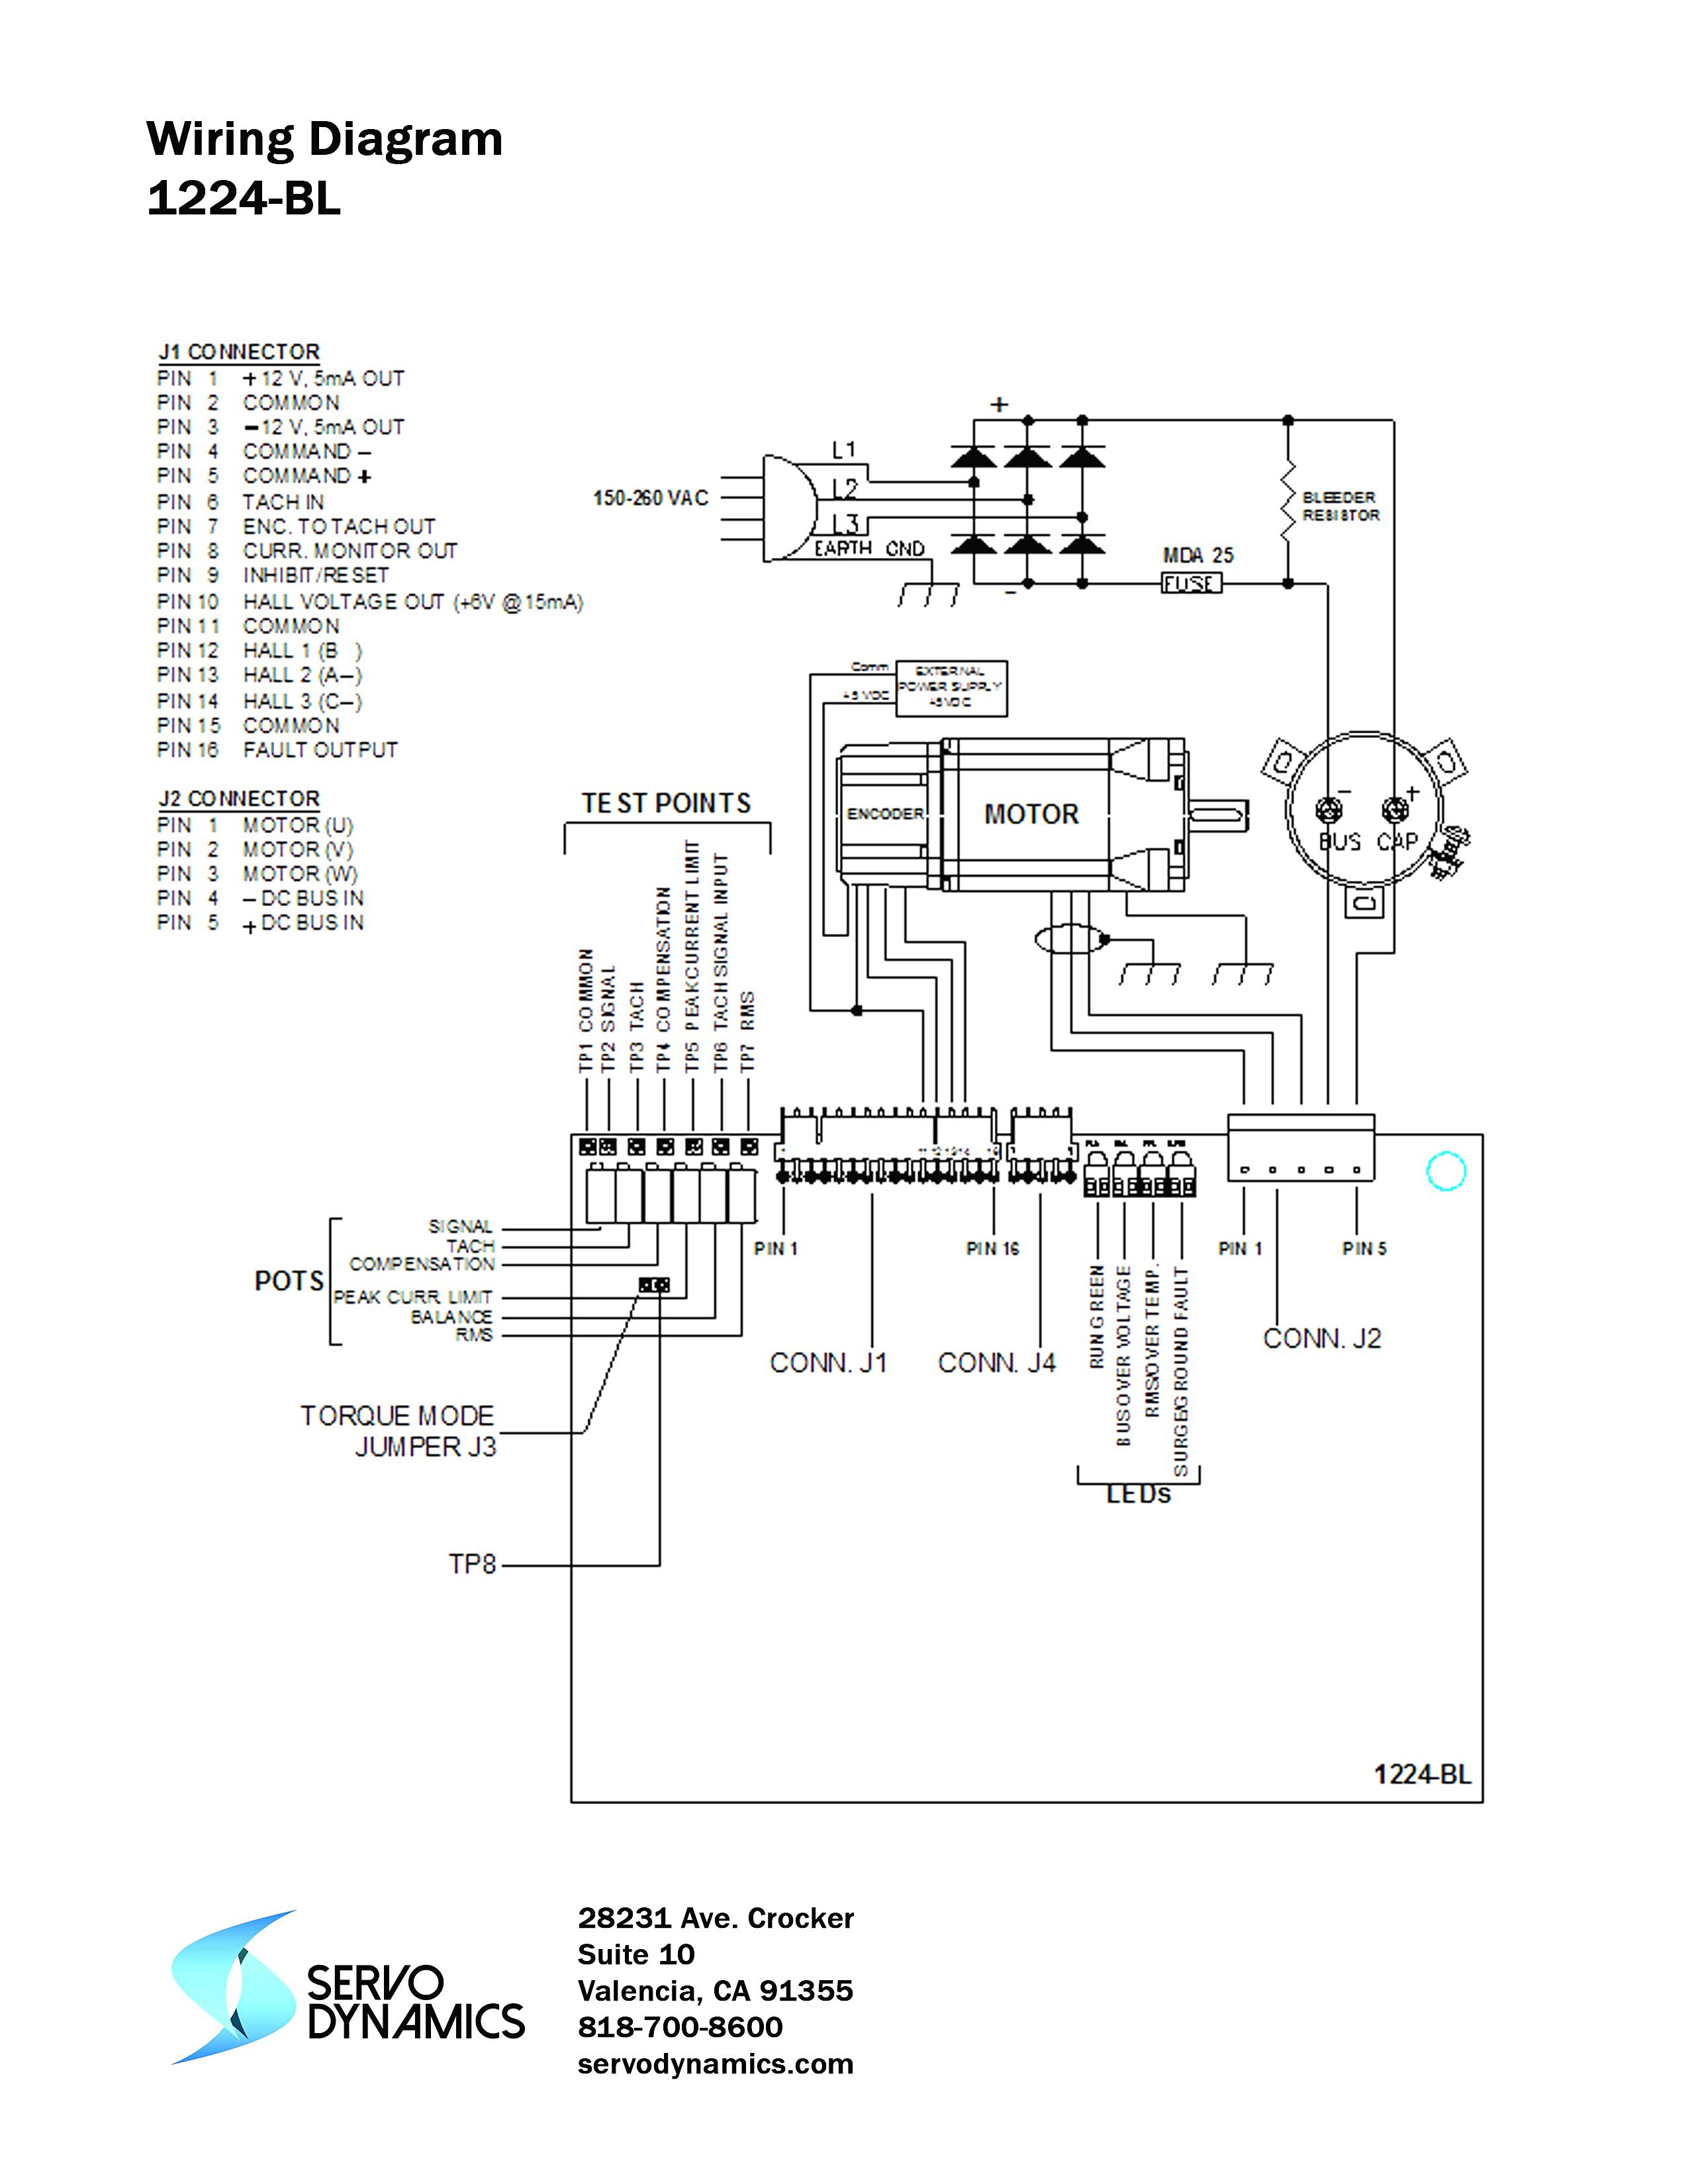 Bei Encoder Wiring Diagram Sample Wiring Diagram Sample